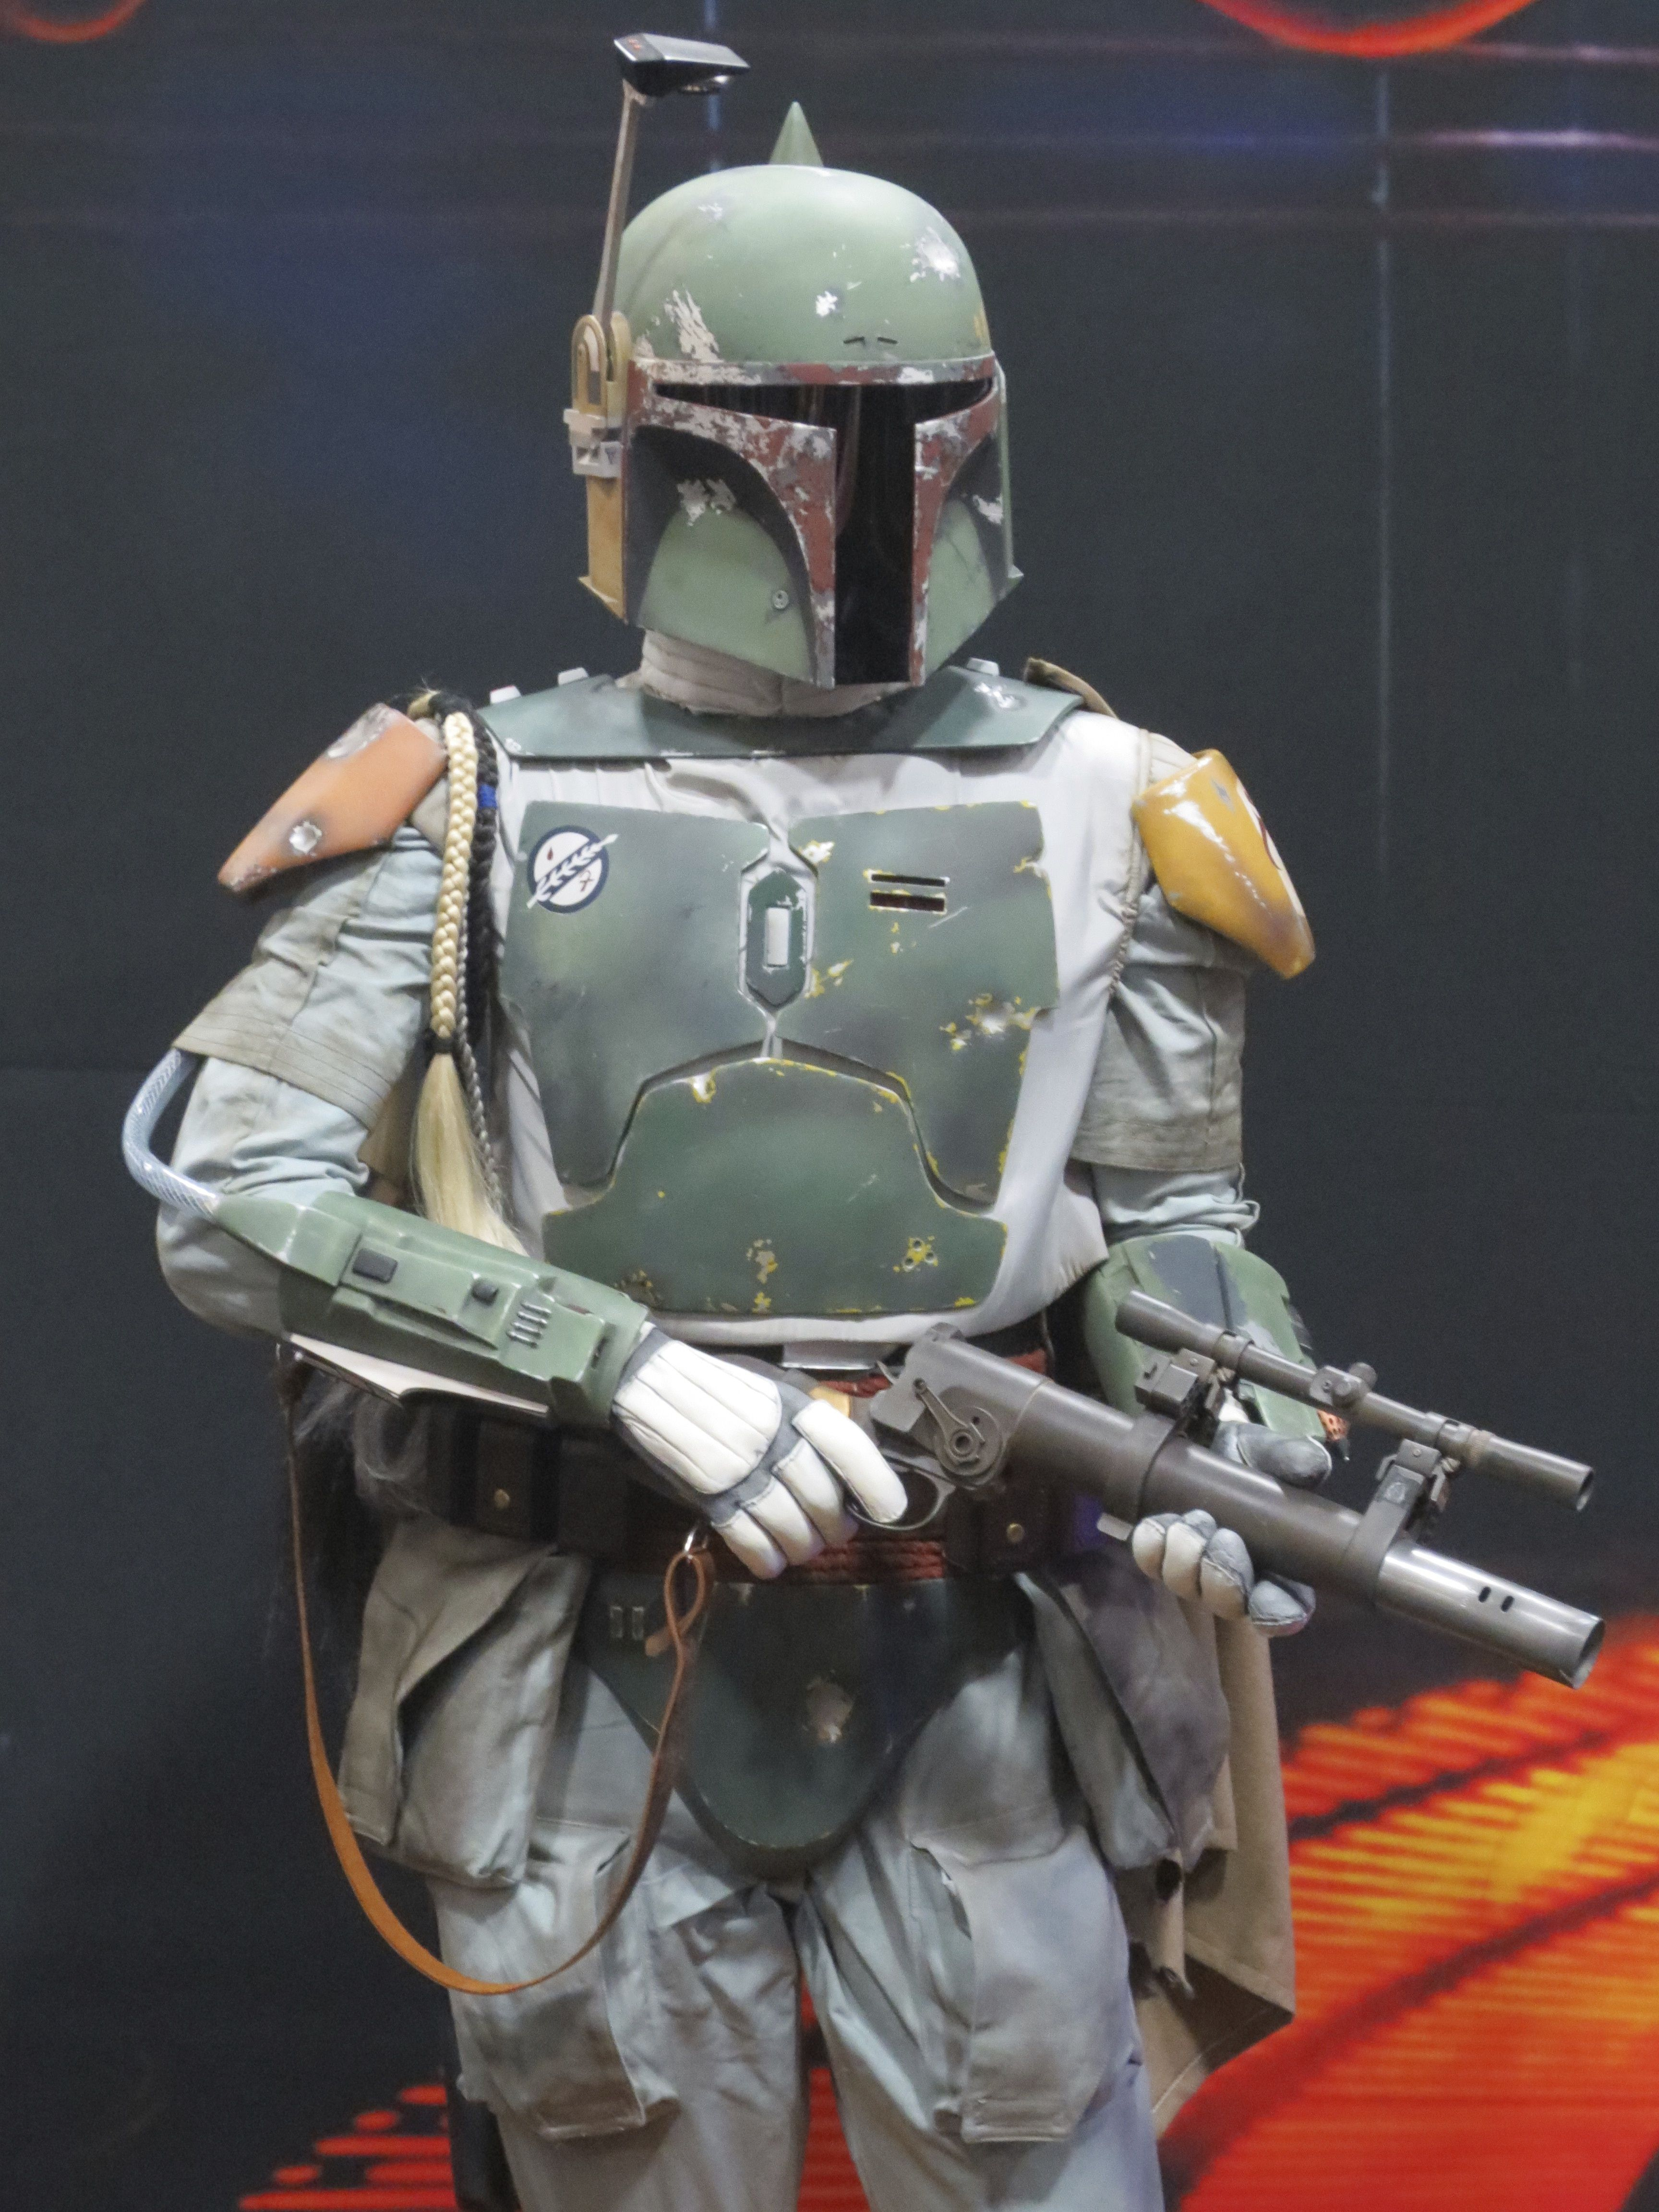 Boba Fett By Sideshow Collectibles - 2013 SDCC  #starwars #bobafett #sideshowcollectibles #sdcc